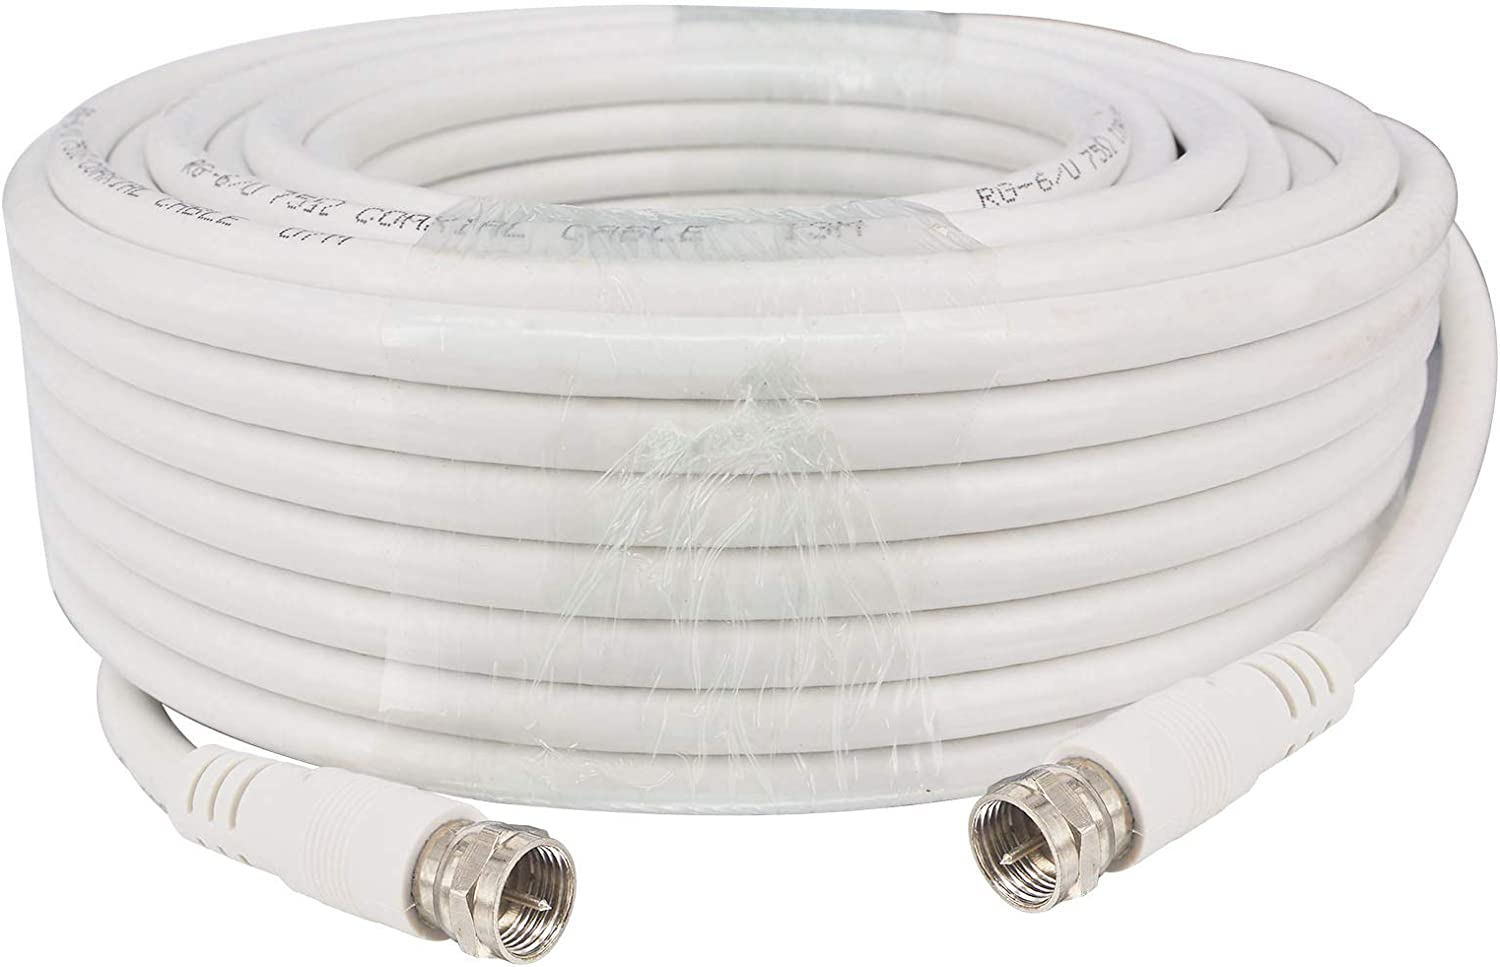 TV Brand Cheap Sale Venue Coax White Cable Weather Proof Coaxia Male RG6 F Branded goods to with